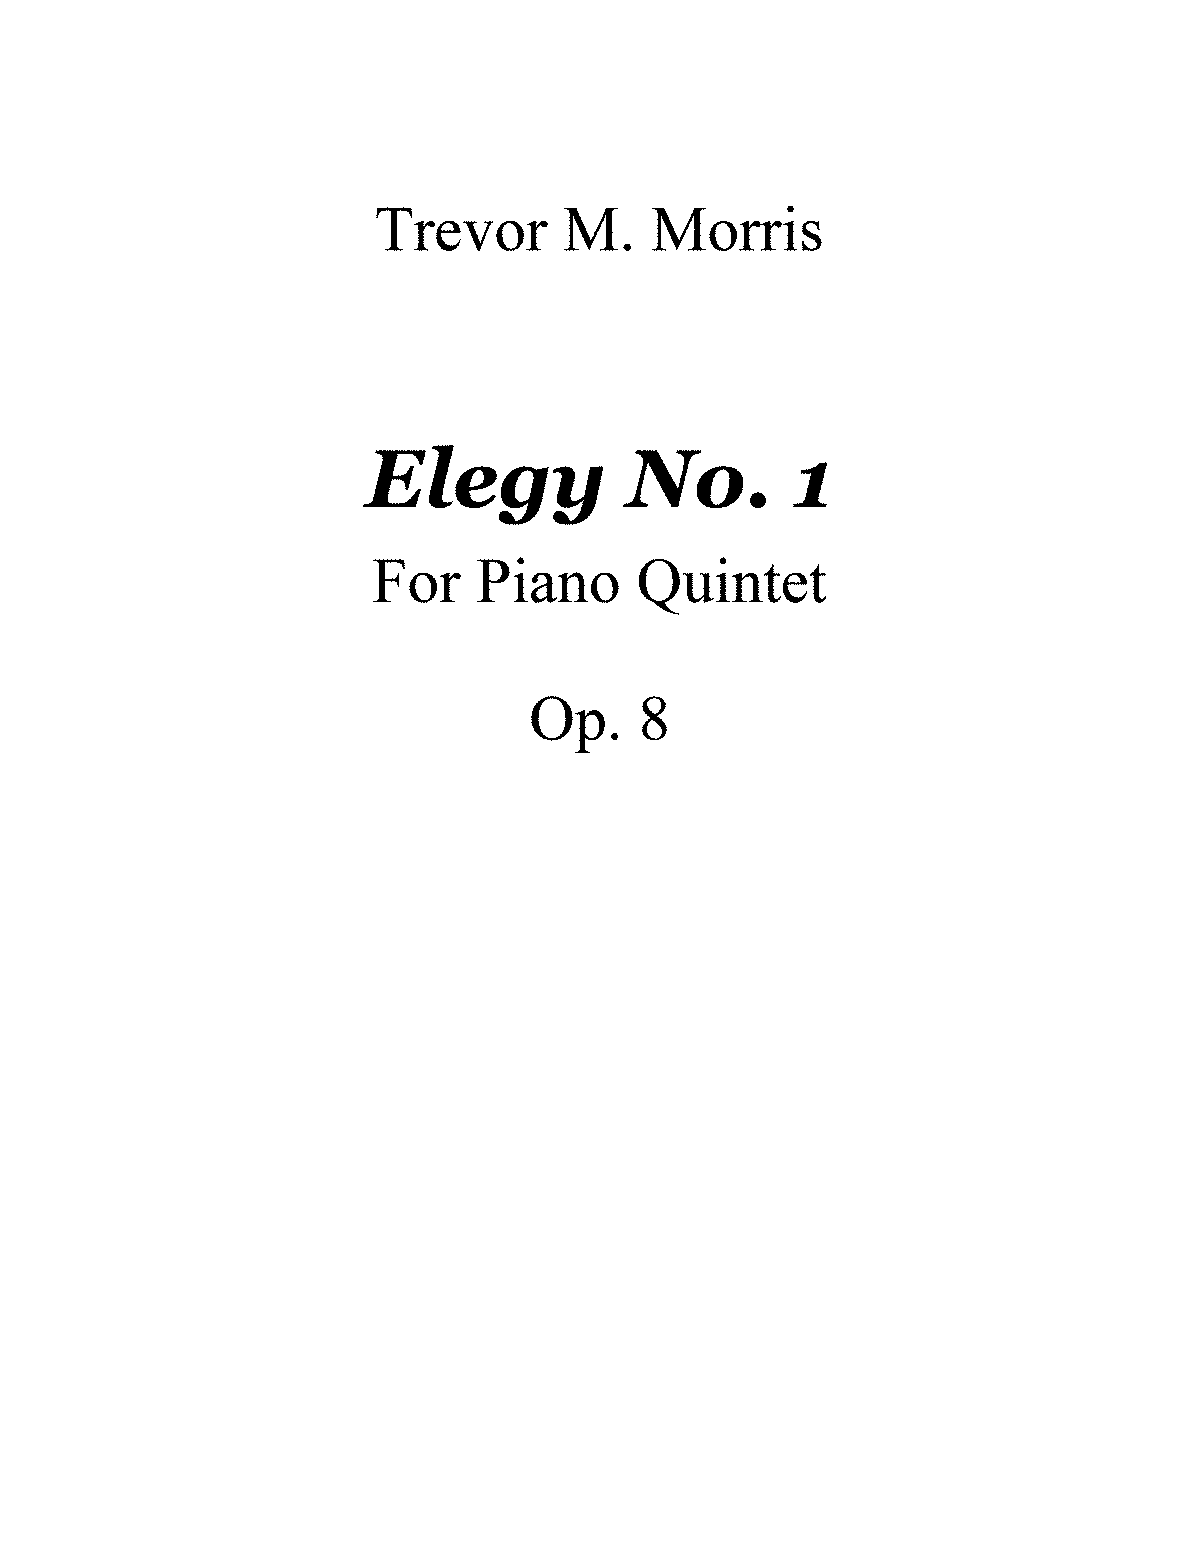 PMLP190767-Elegy for Piano Quintet1 Score.pdf